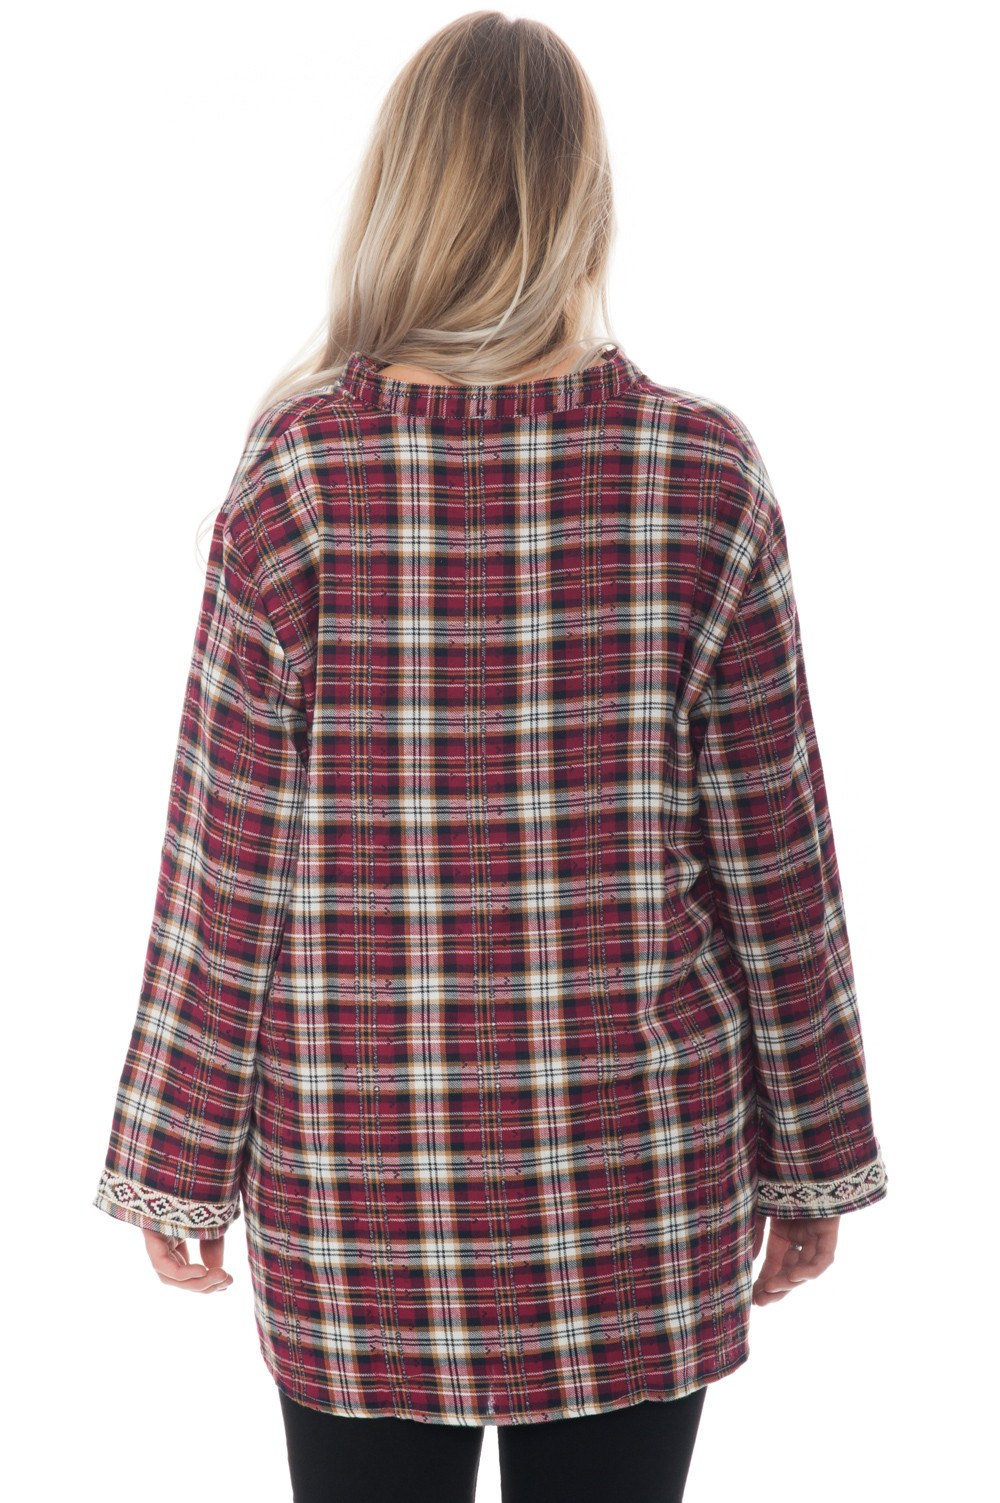 Shirt - Plaid with Embroidered Detail - 3